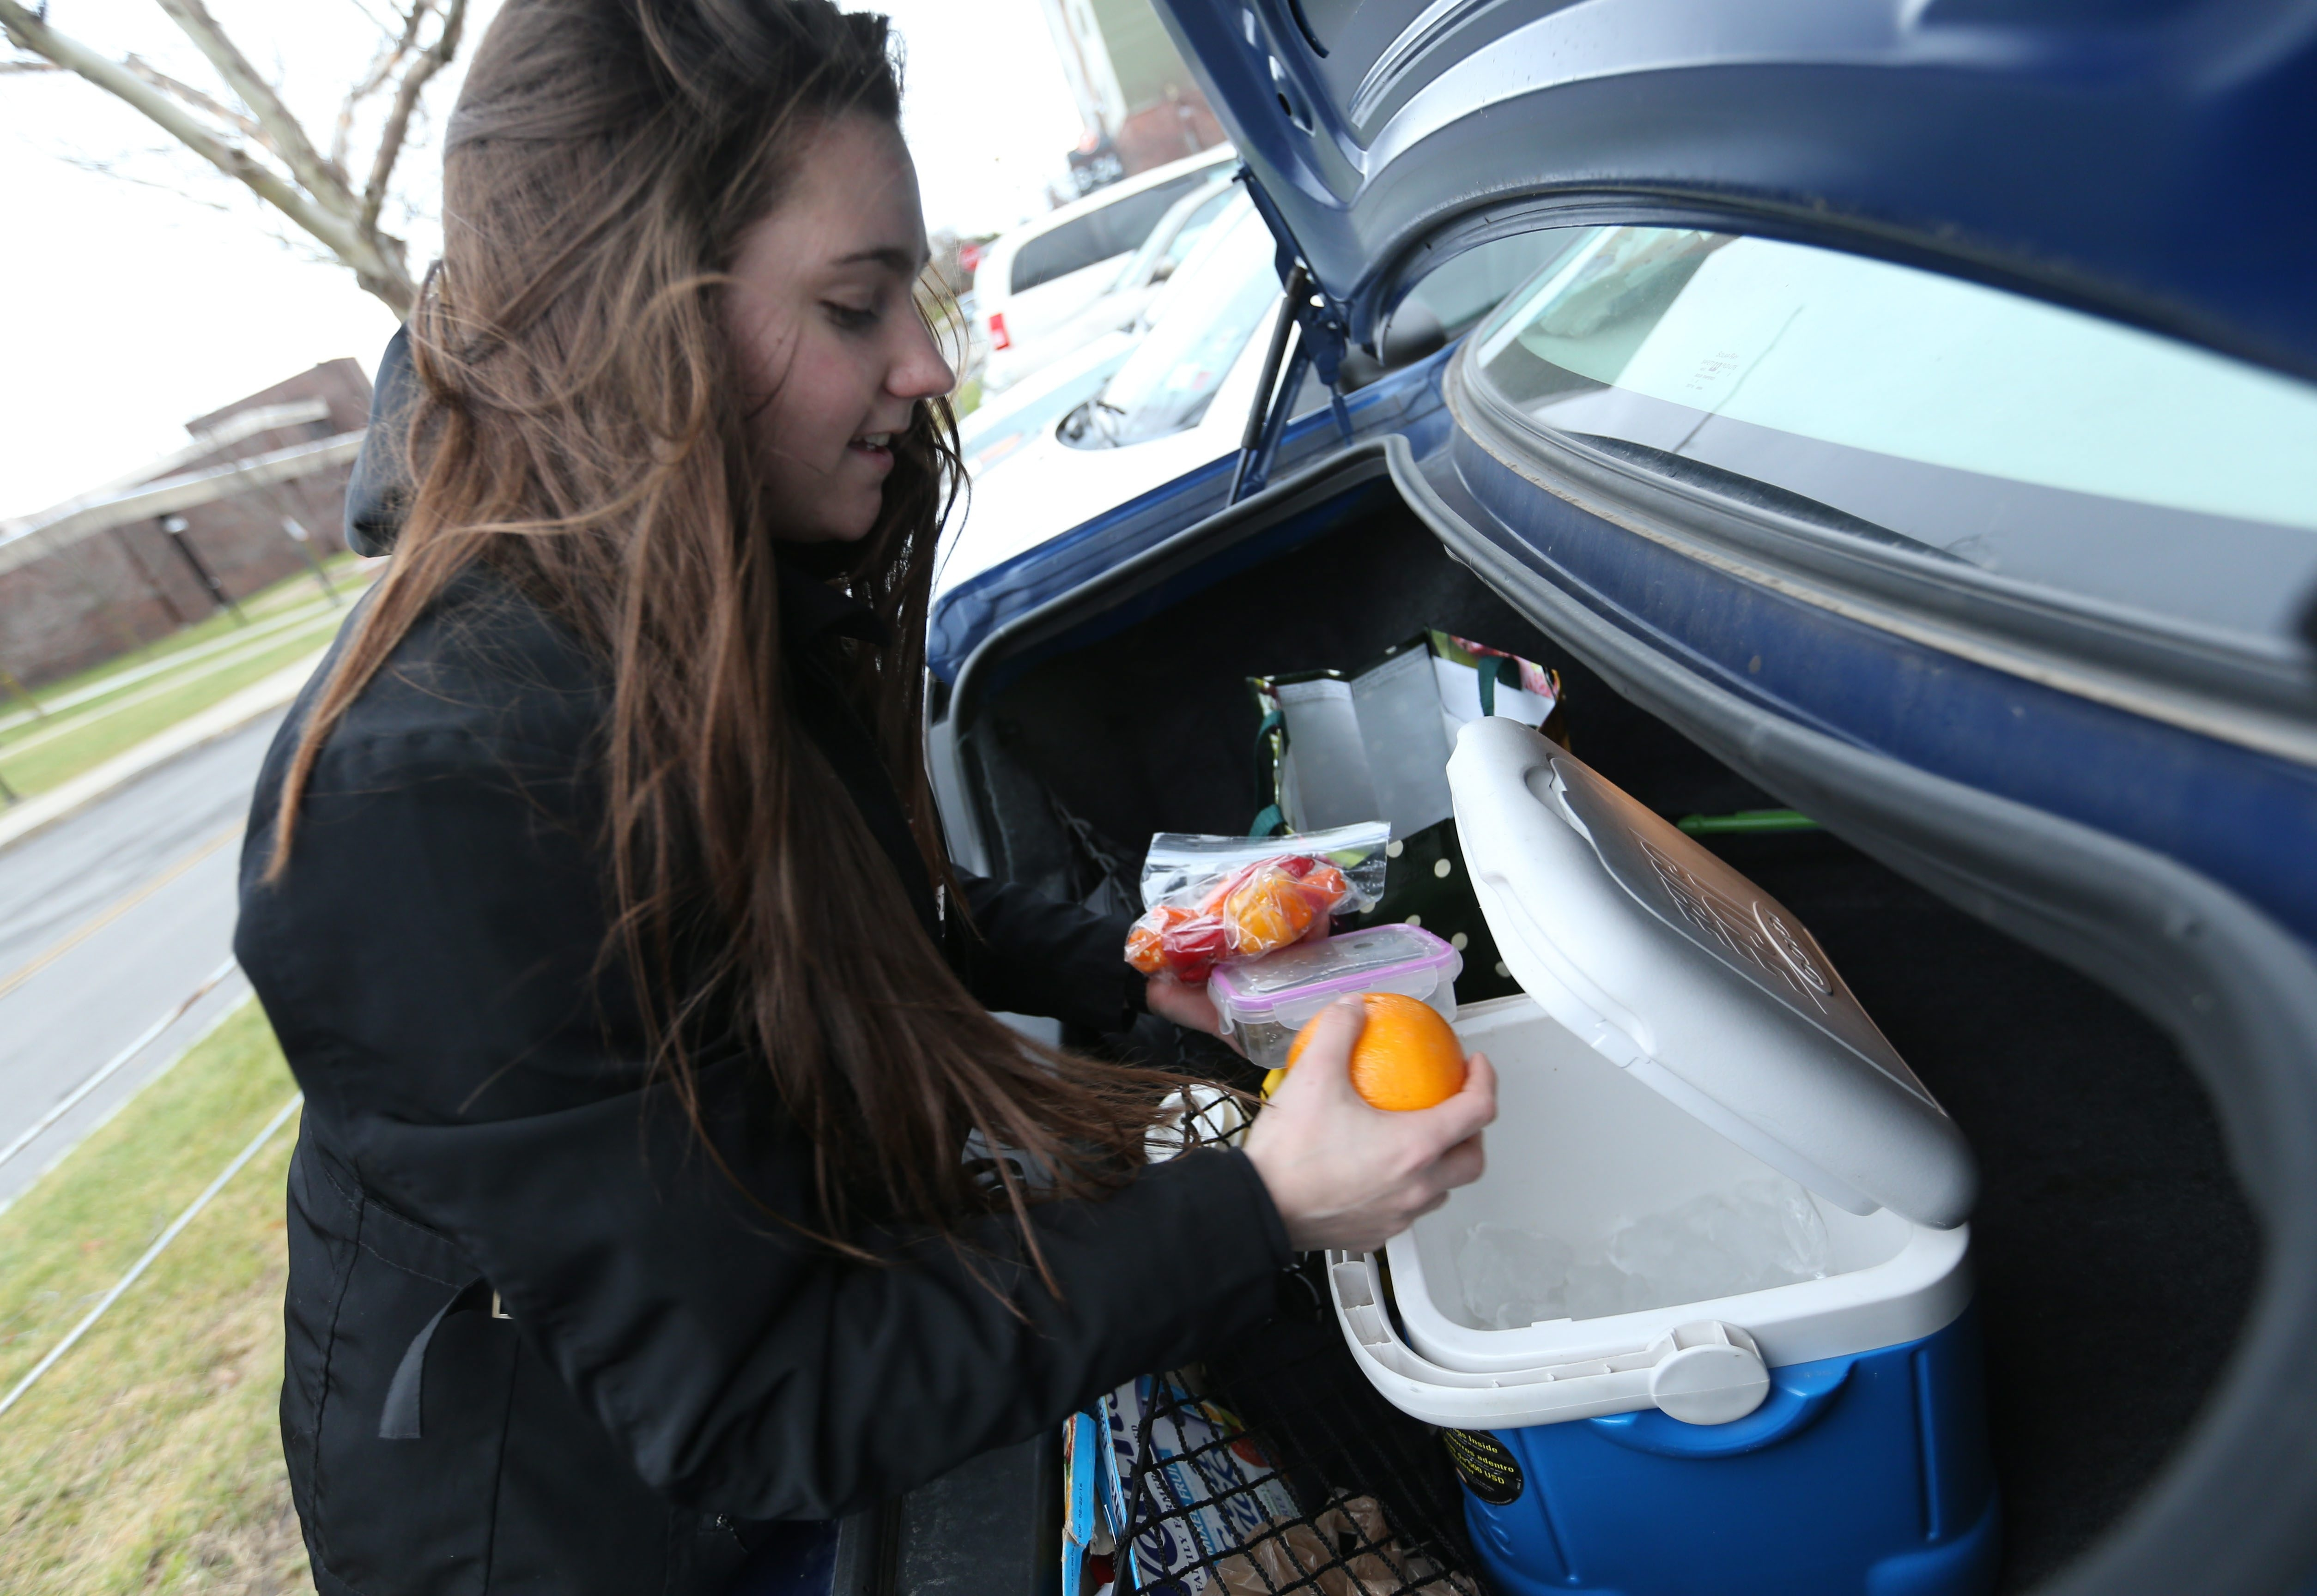 Buffalo State sophomore Charissa Szpaicher, who commutes from Wheatfield, keeps a cooler in her car filled with a healthful lunch and snacks. (Sharon Cantillon/Buffalo News)